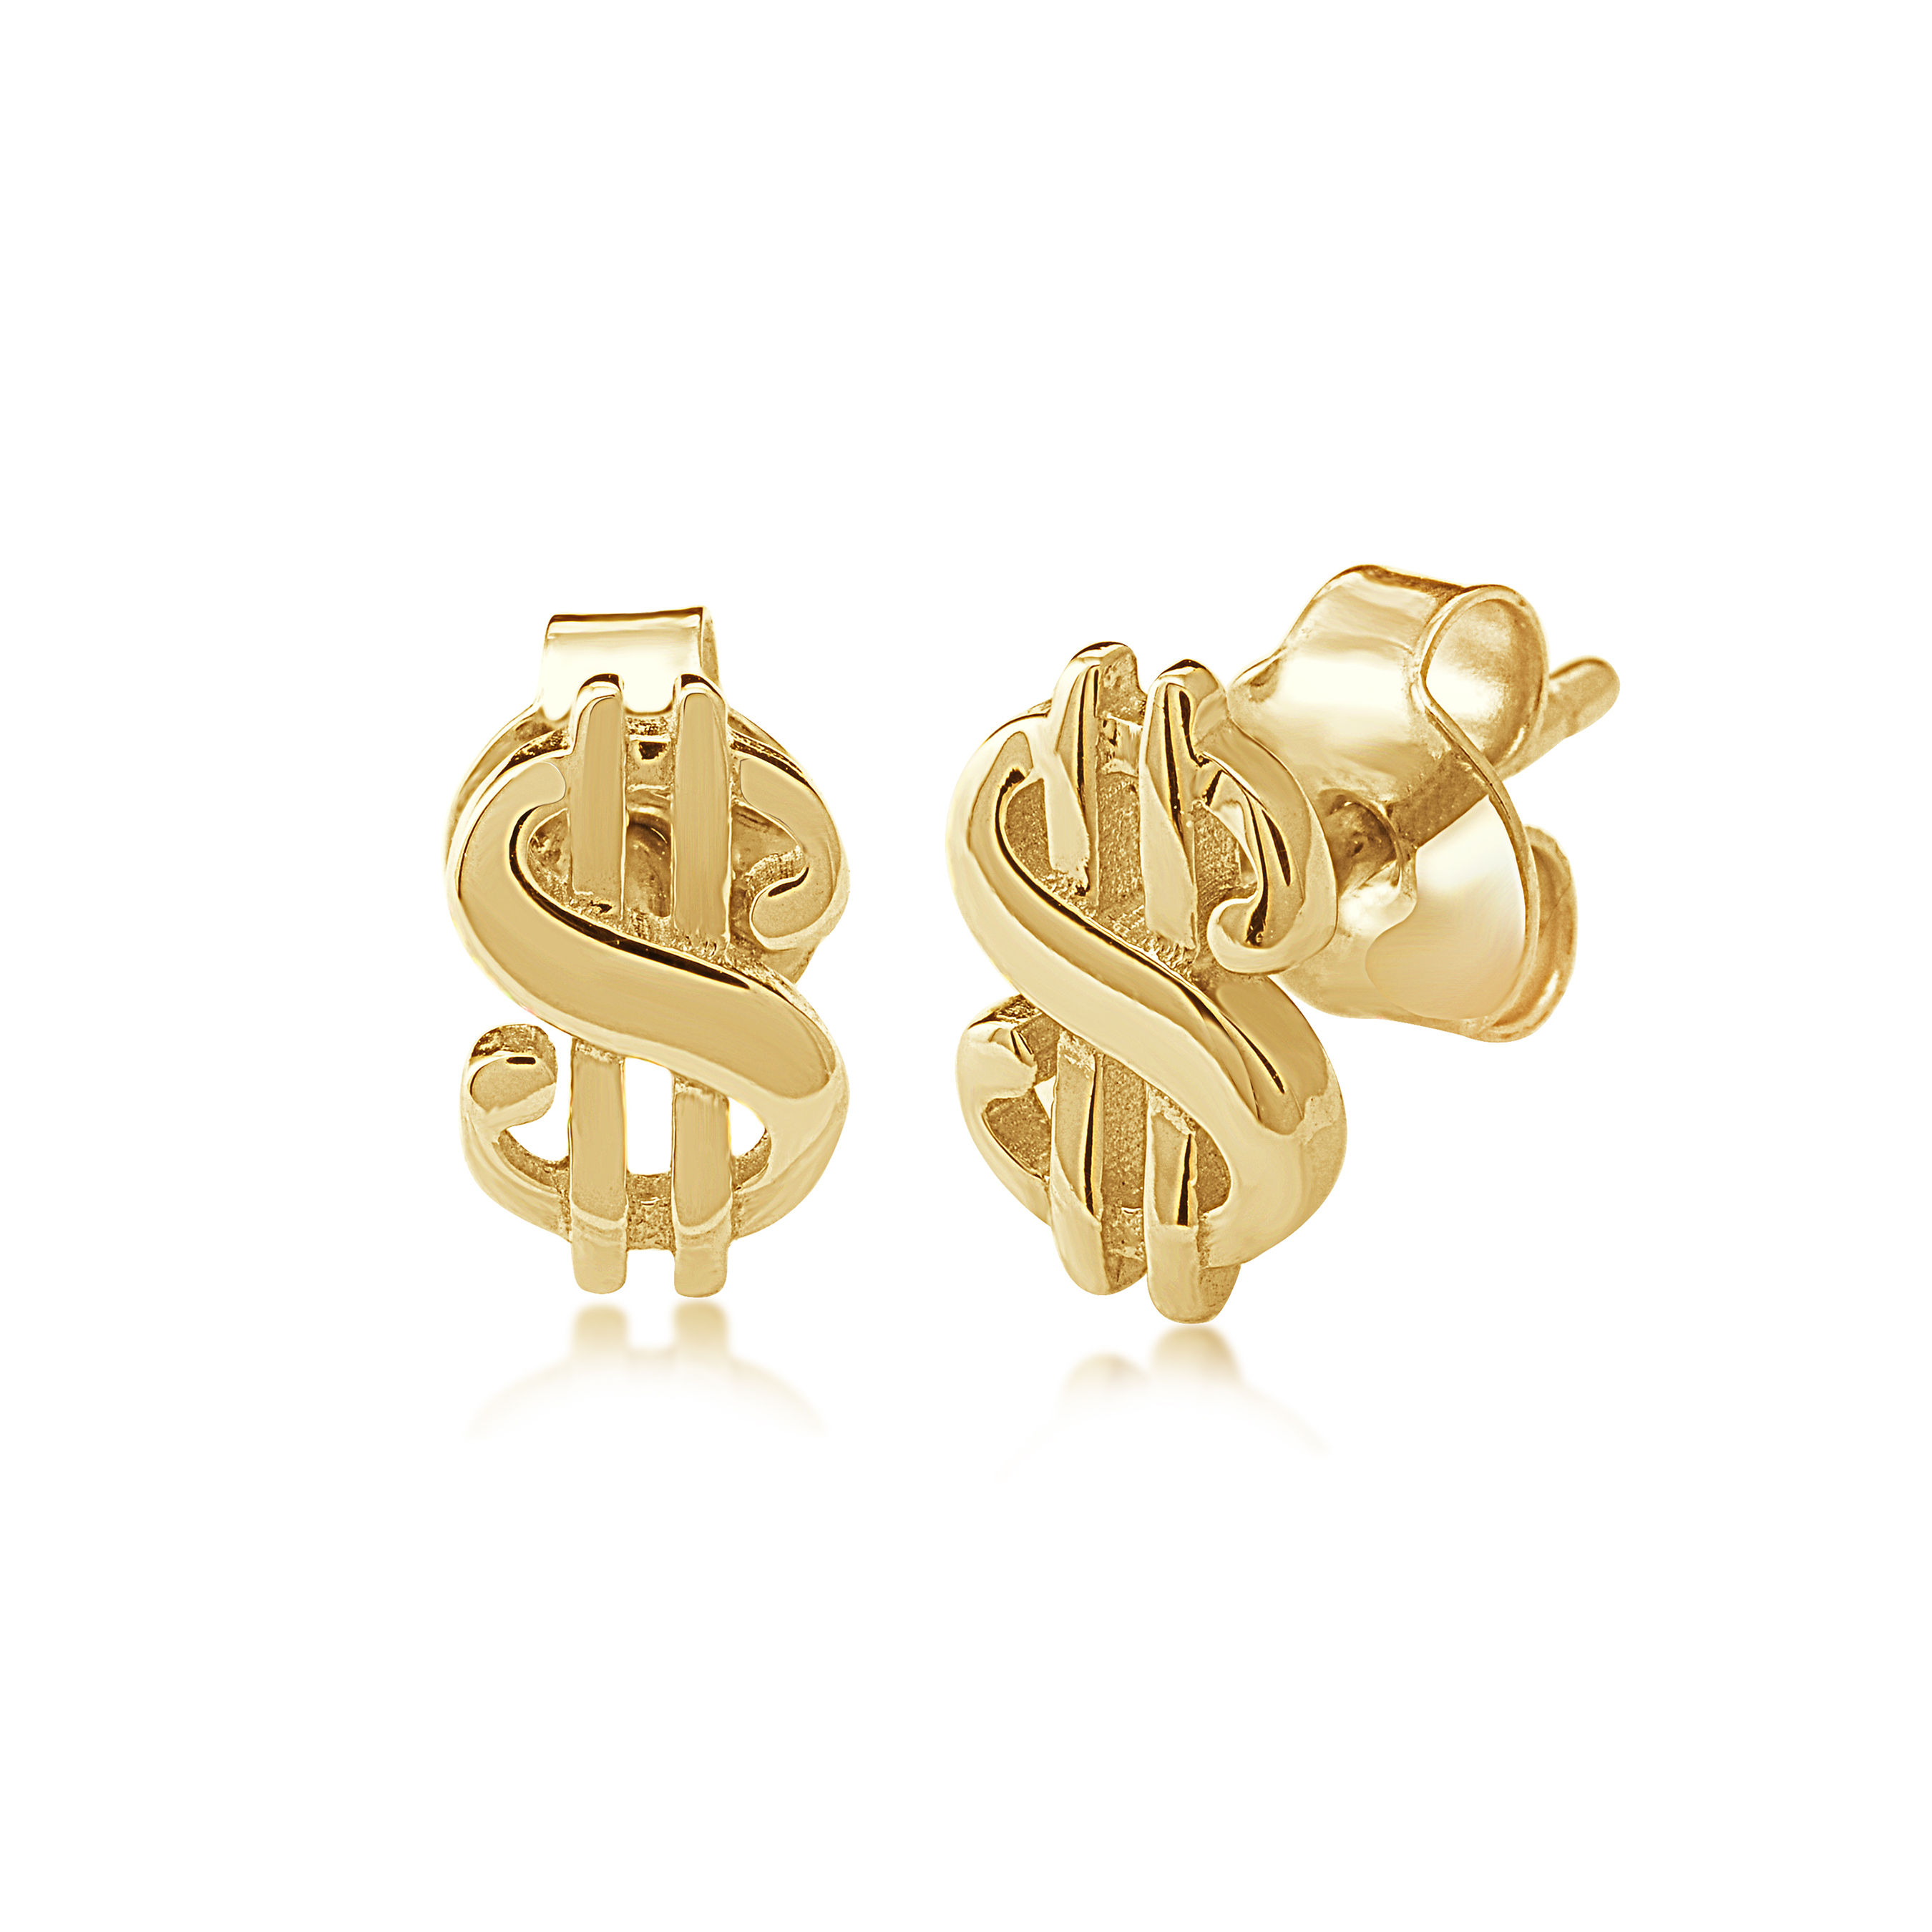 Dollar sign earrings for women - 10K yellow Gold